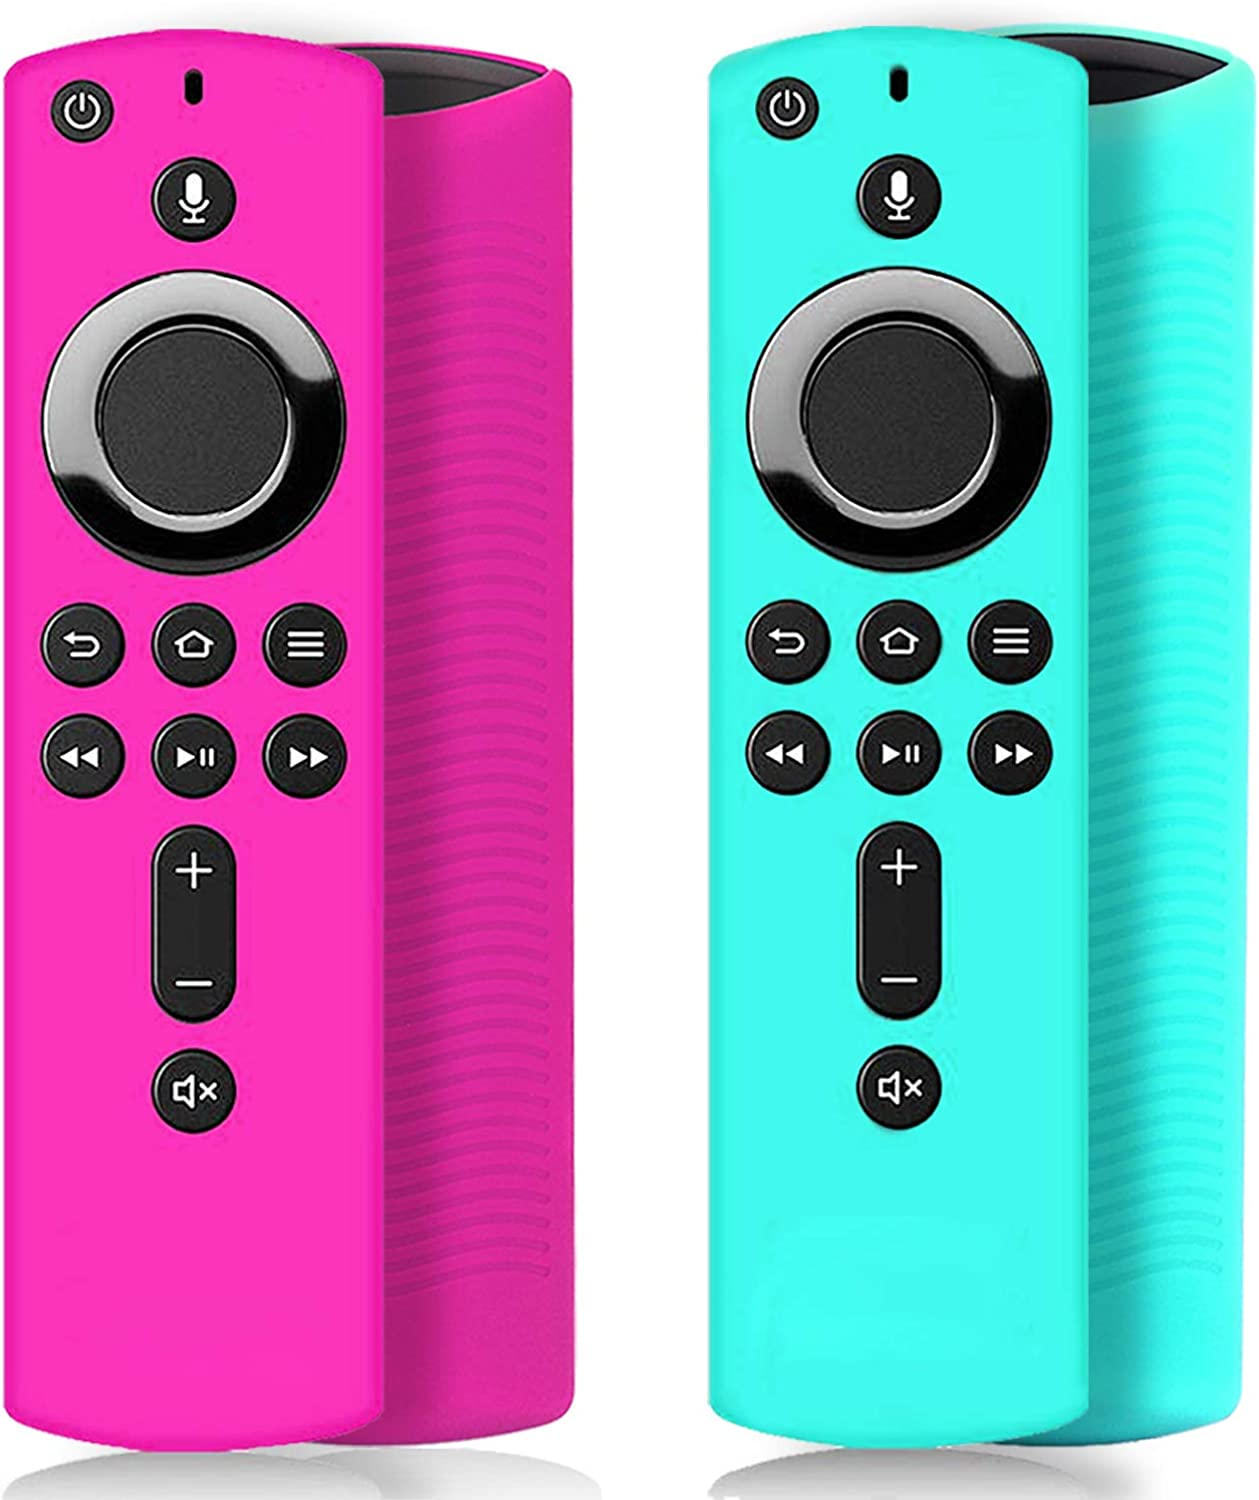 [2 Pack ] Stick Remote Cover Case, Silicone Remote Cover Case Compatible with 4K Stick, Lightweight Anti Slip Shockproof Remote Cover